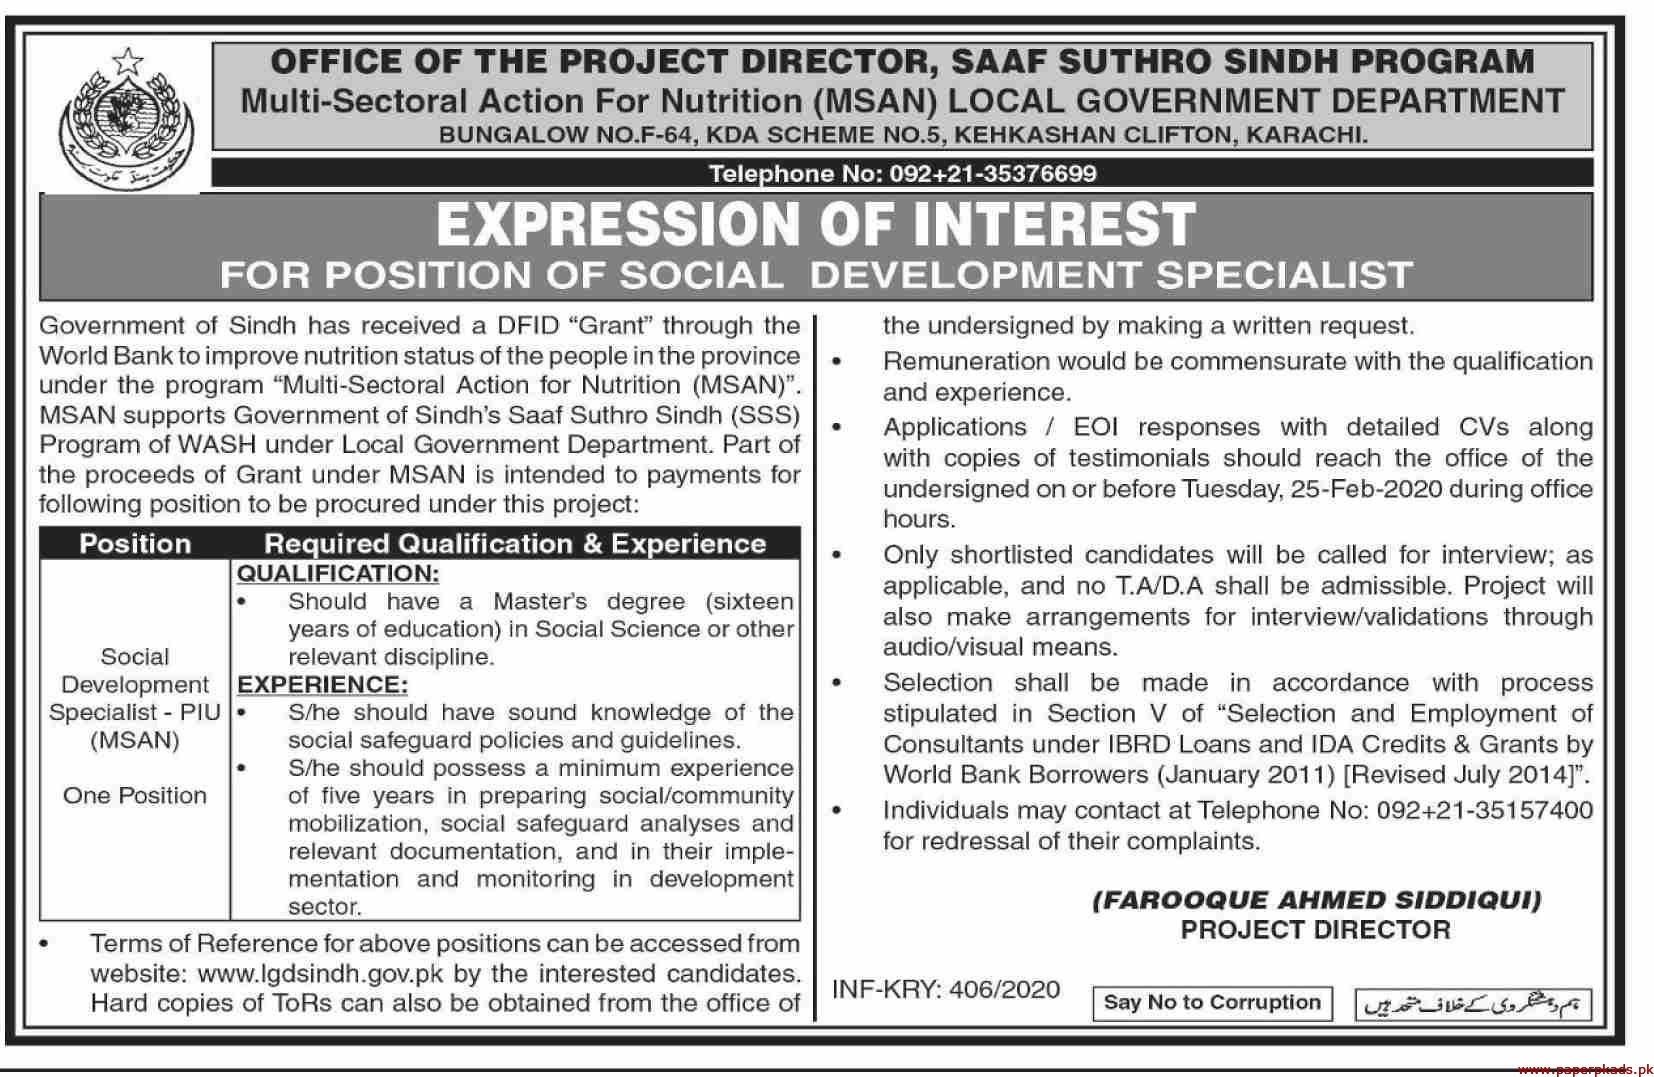 SAAF Suthro Sindh Program Jobs 2020 Latest